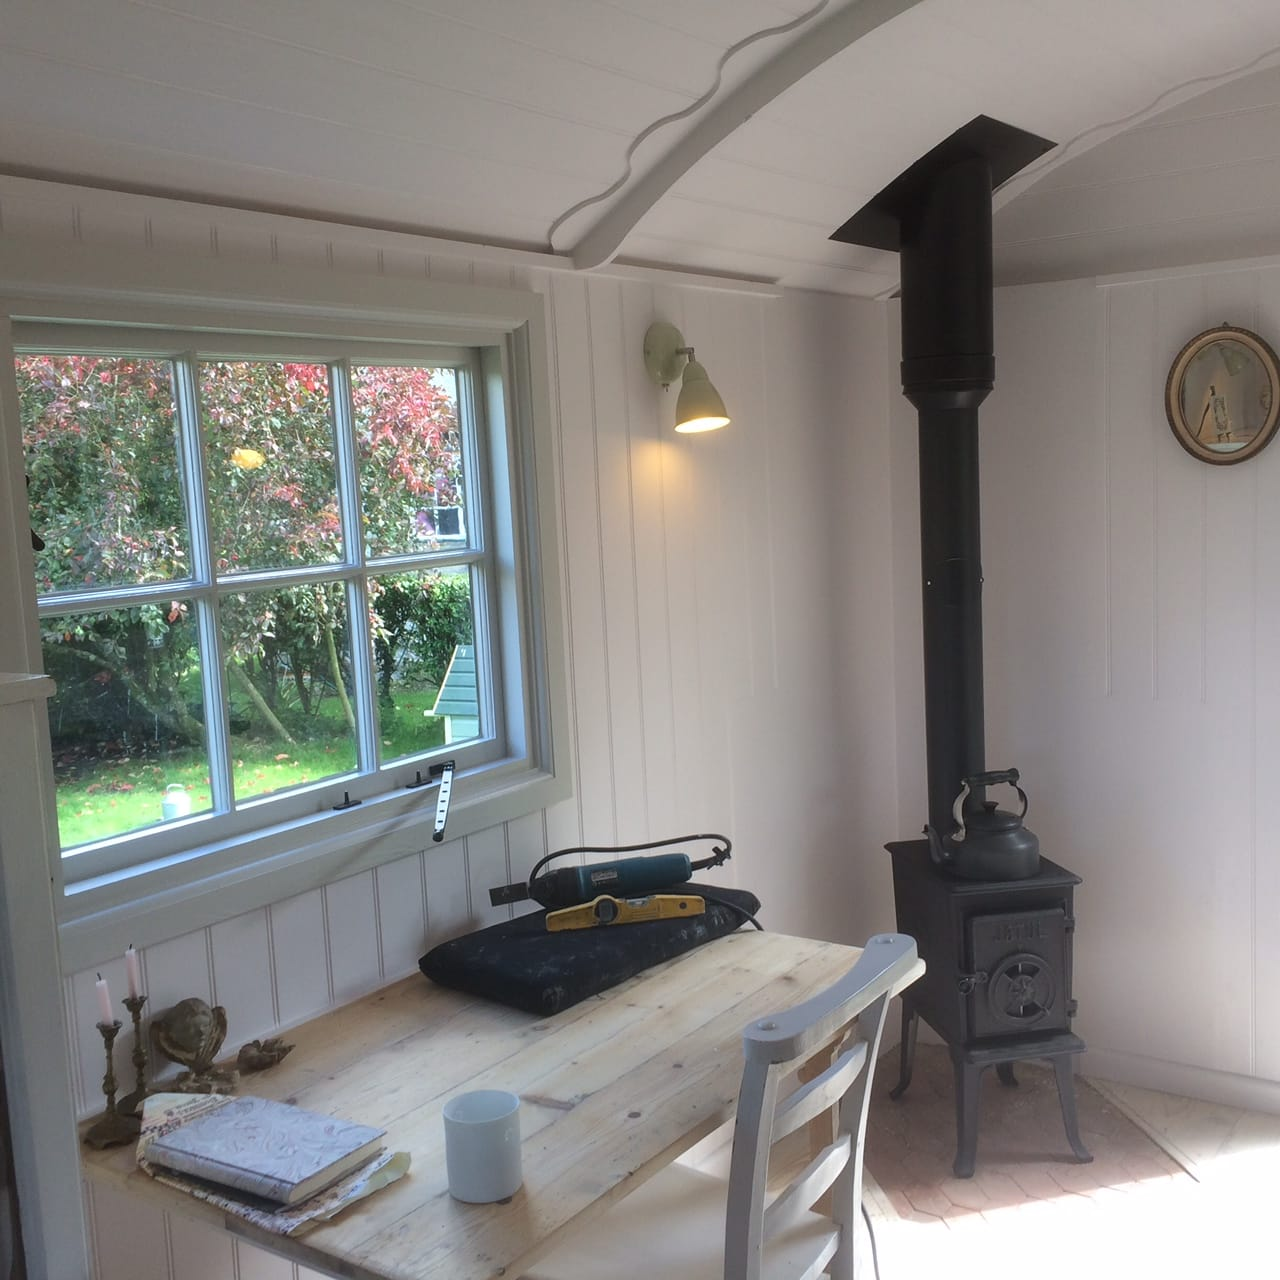 Jotul stove installed in an amazing hut built by Roundhill Shepherds Huts